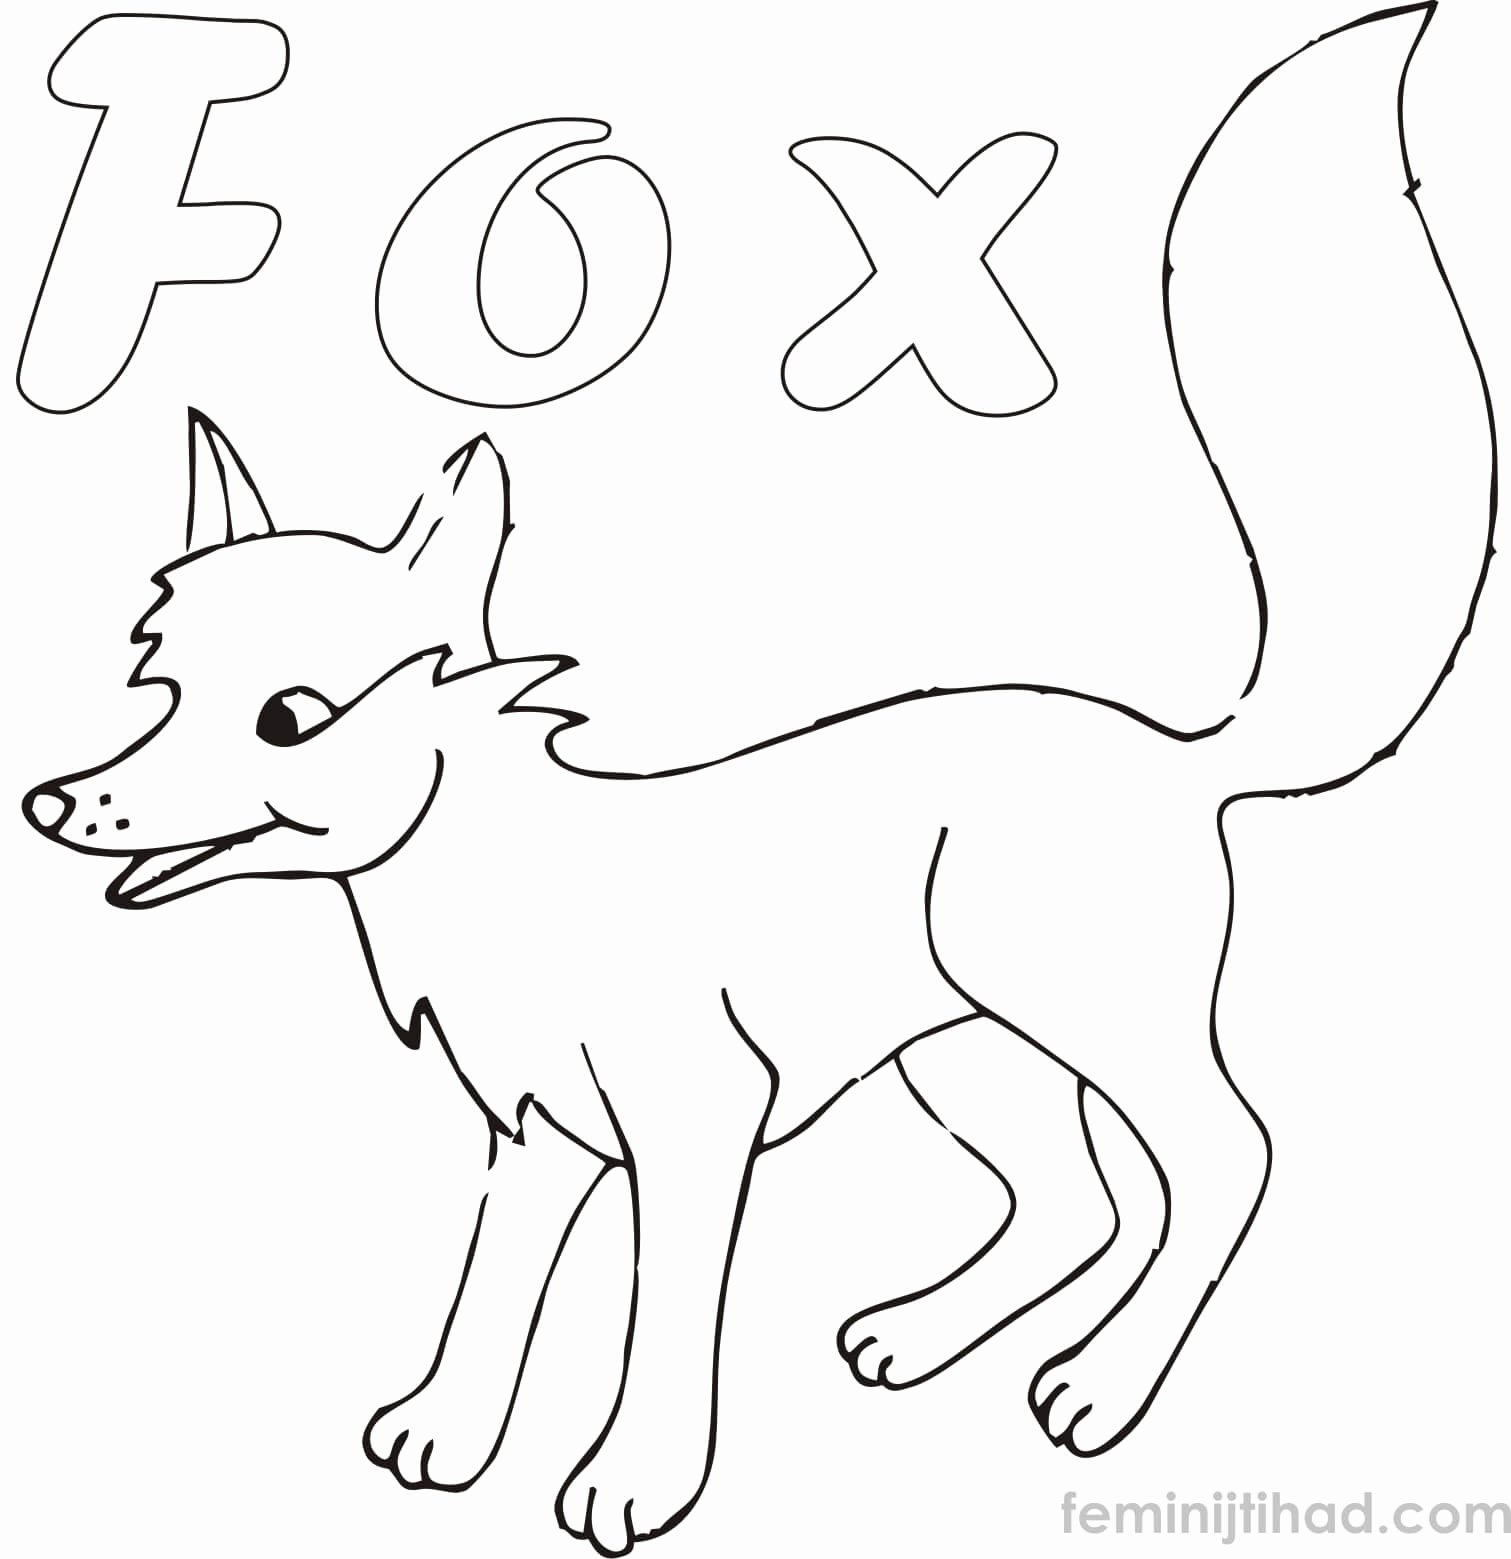 1511x1559 Footprints Coloring Page Luxury Modern Fox Coloring Pages To Print